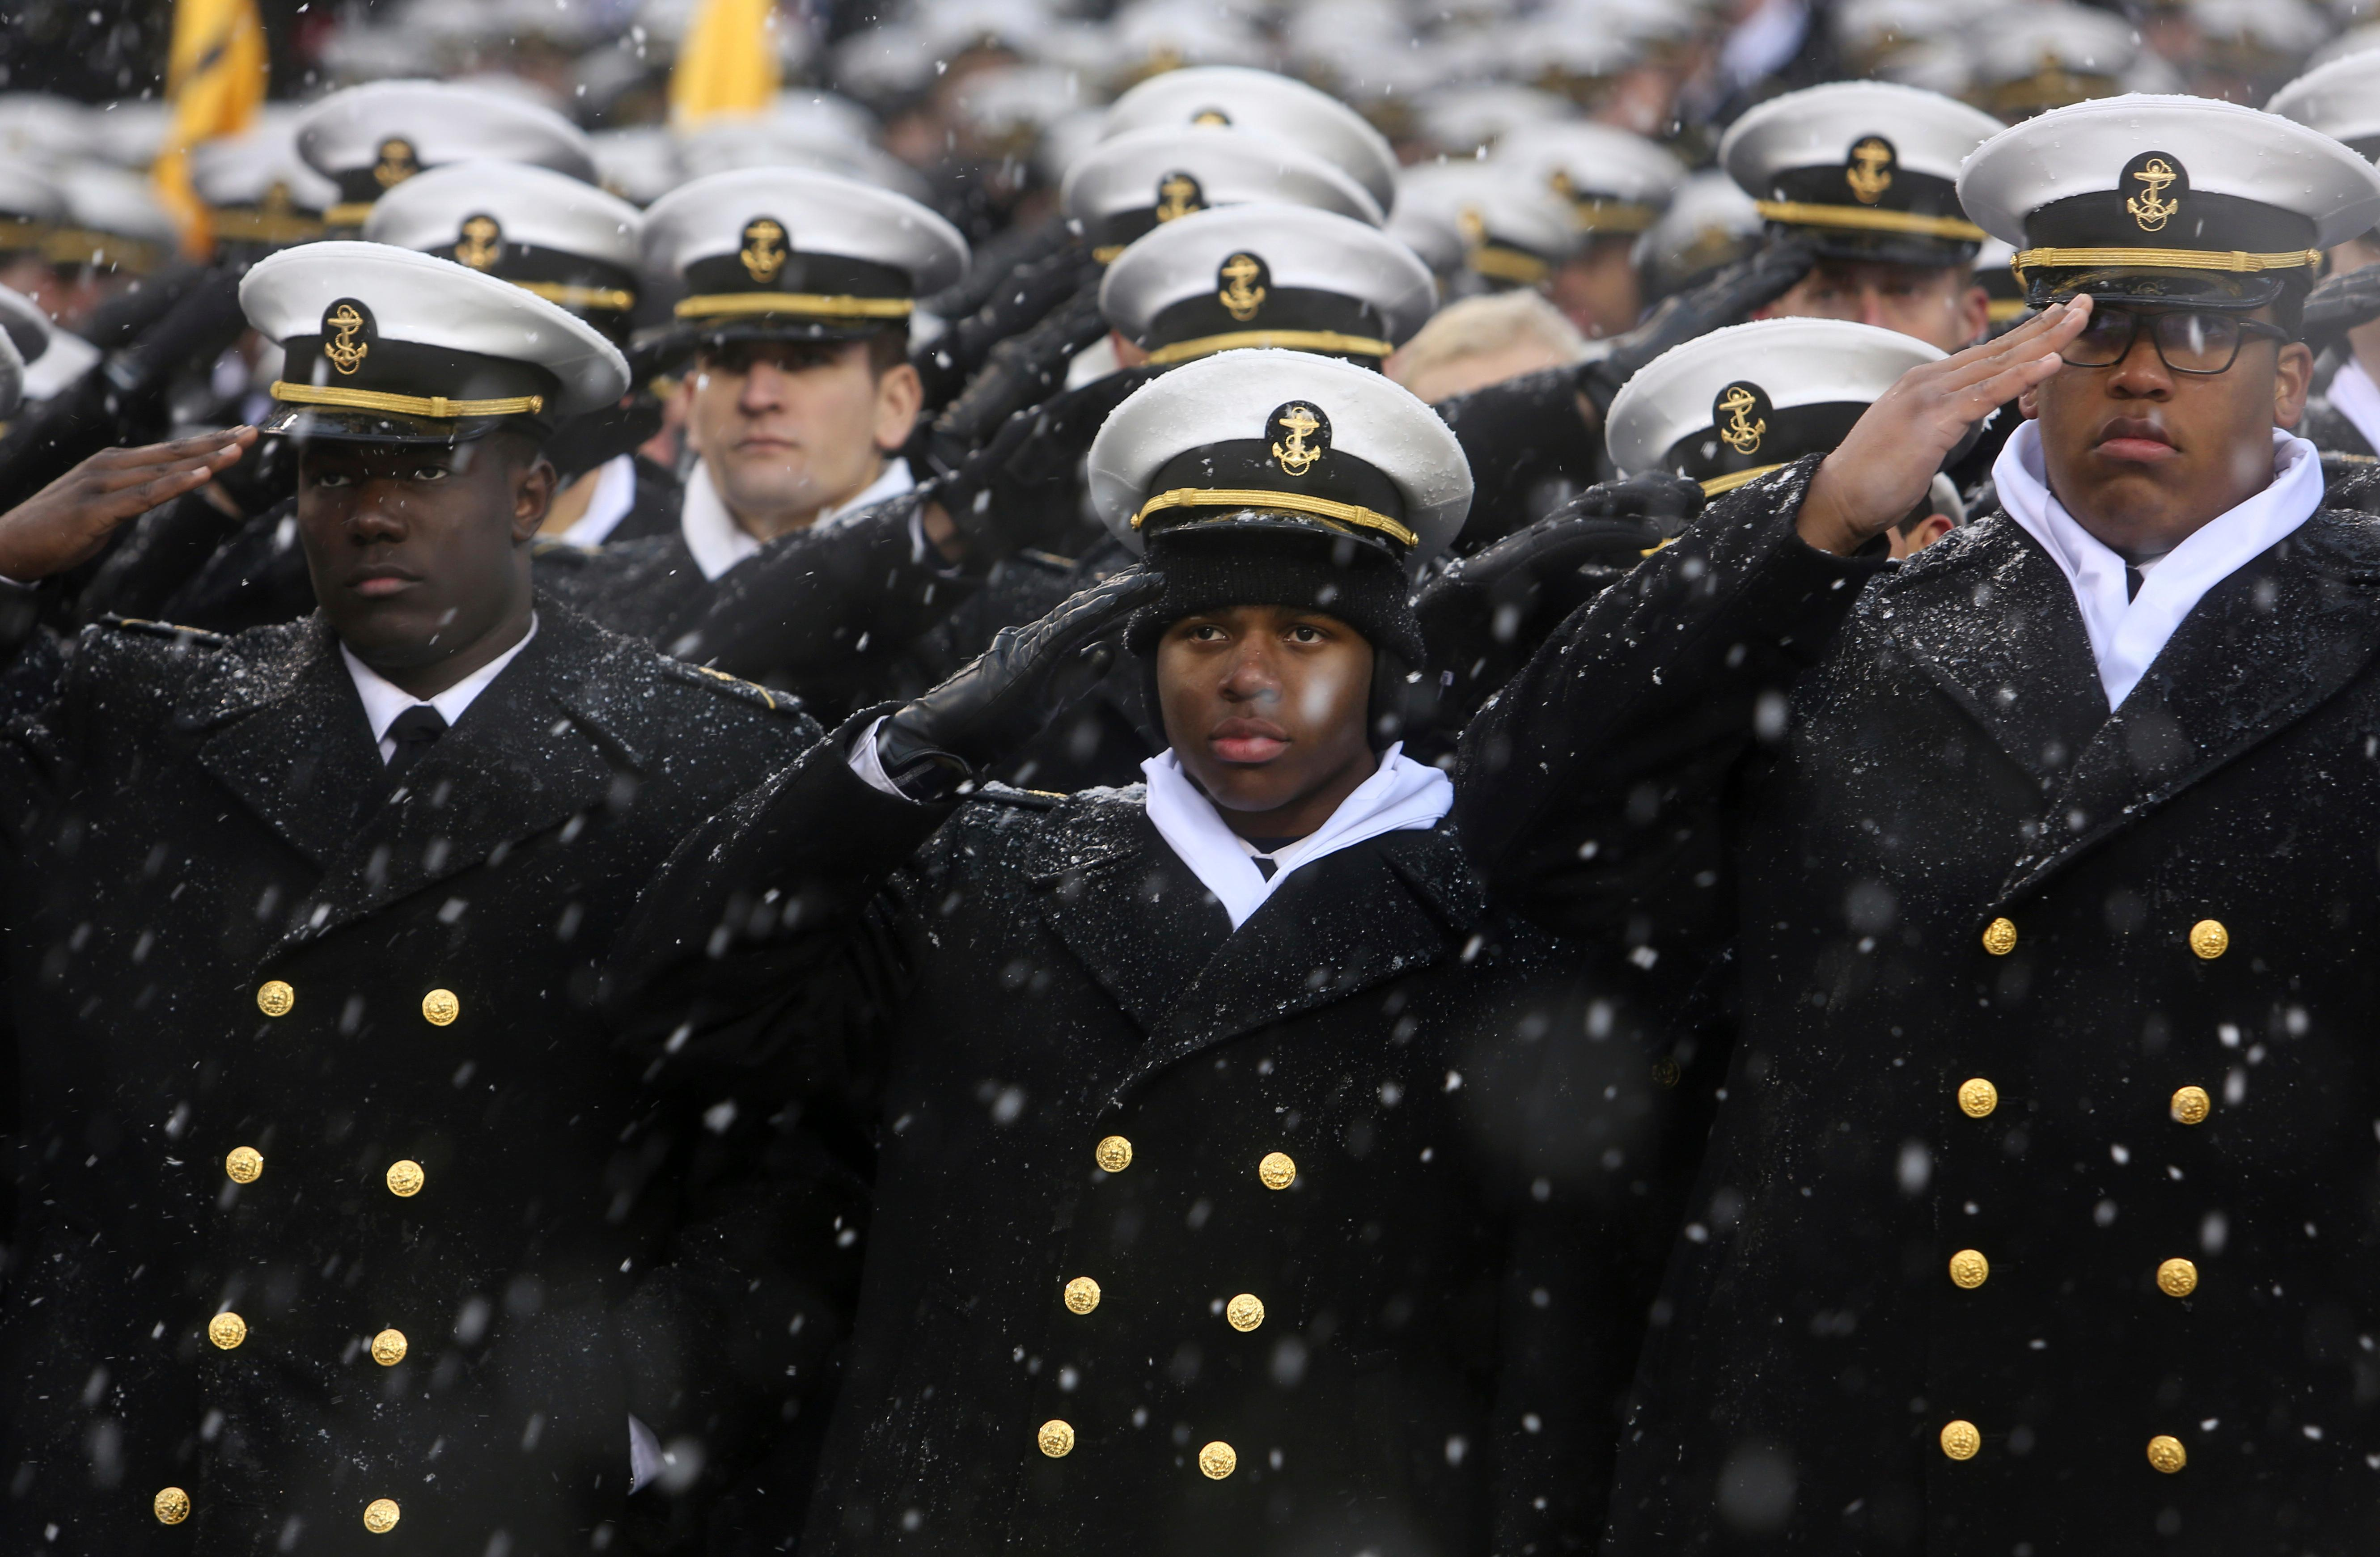 Navy Midshipmen salute during the national anthem just before the 118th meeting of the annual Army Navy football game, Saturday Dec. 9, 2017 in Philadelphia. (AP Photo/Jacqueline Larma)